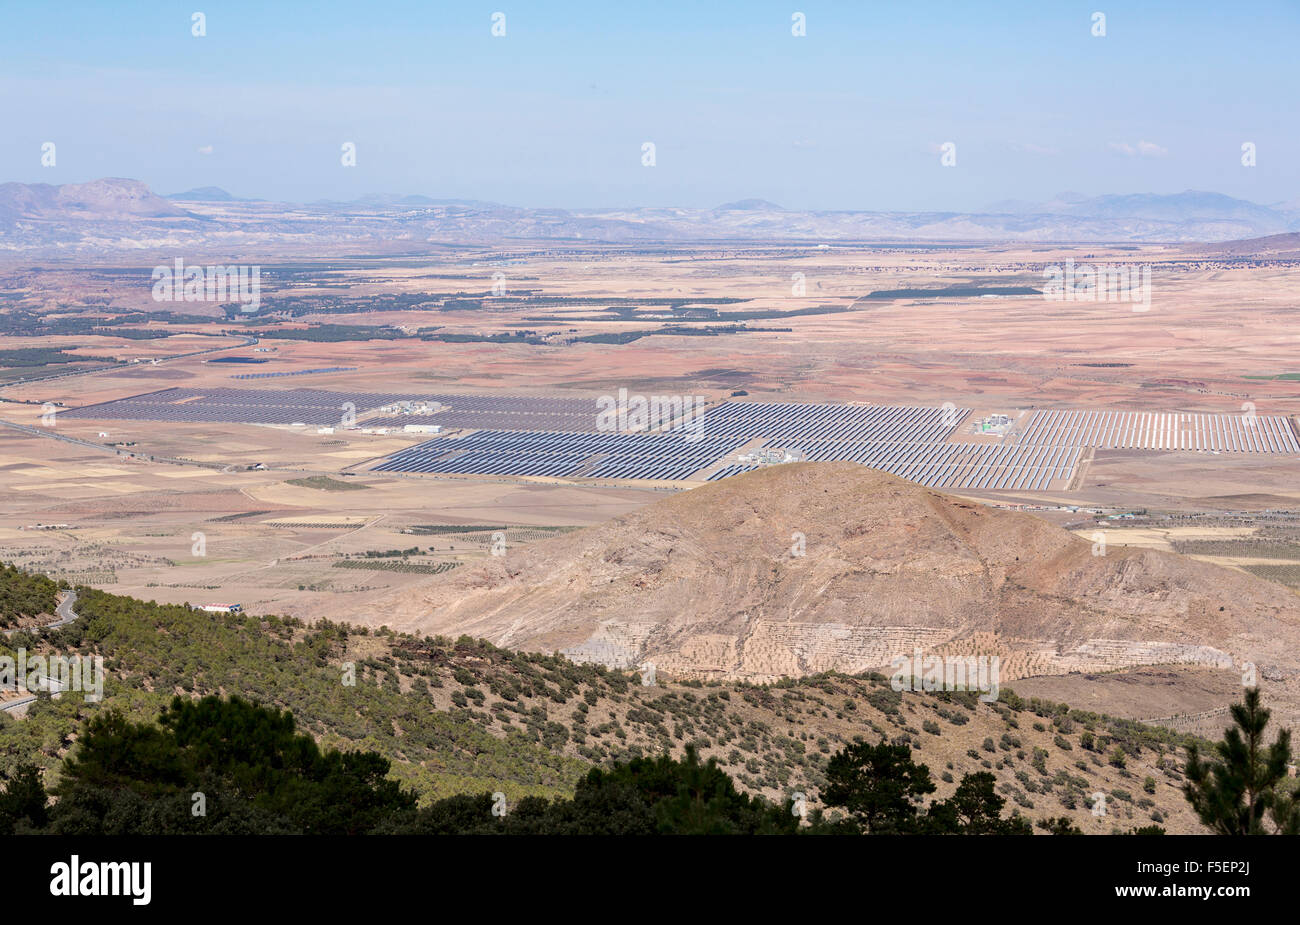 Aerial view of solar panels in a large solar farm array in the countryside in Southern Spain - Stock Image